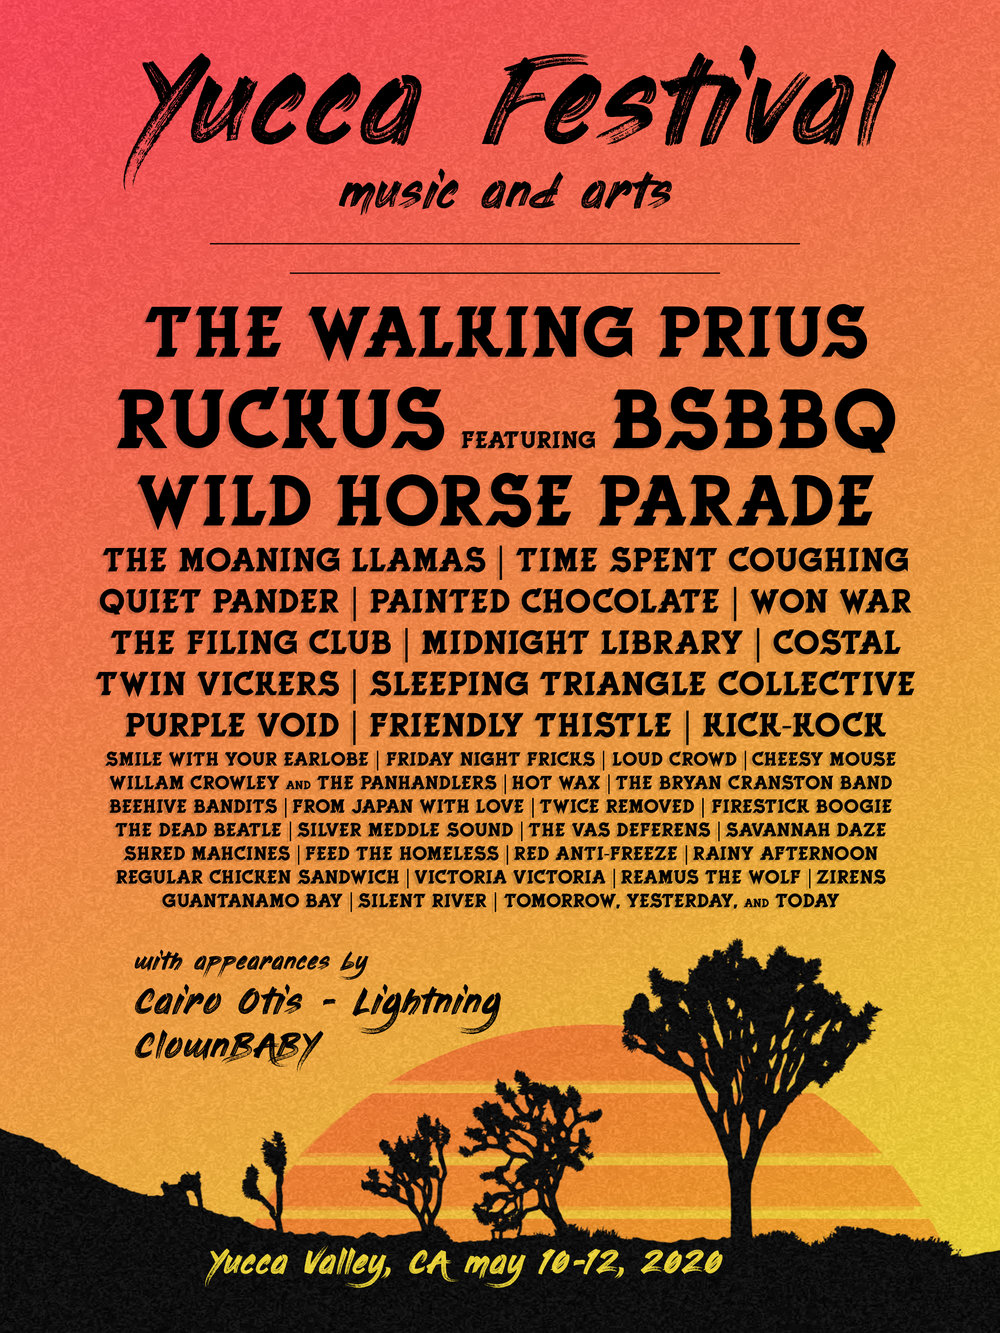 yucca_festival   We're super excited to announce the official line-up for the festival this year, which includes headliners THE WALKING PRIUS, RUCKUS featuring BSBBQ, and WILD HORSE PARADE  .  Every year Yucca Music and Arts loans itself to a certain artistic and musical theme. This year''s theme is vaporwave, so get out your cassette tapes and 80s nostalgia keepsakes and head to the desert!  .   #yuccafest #theme #v a p o r w a v e